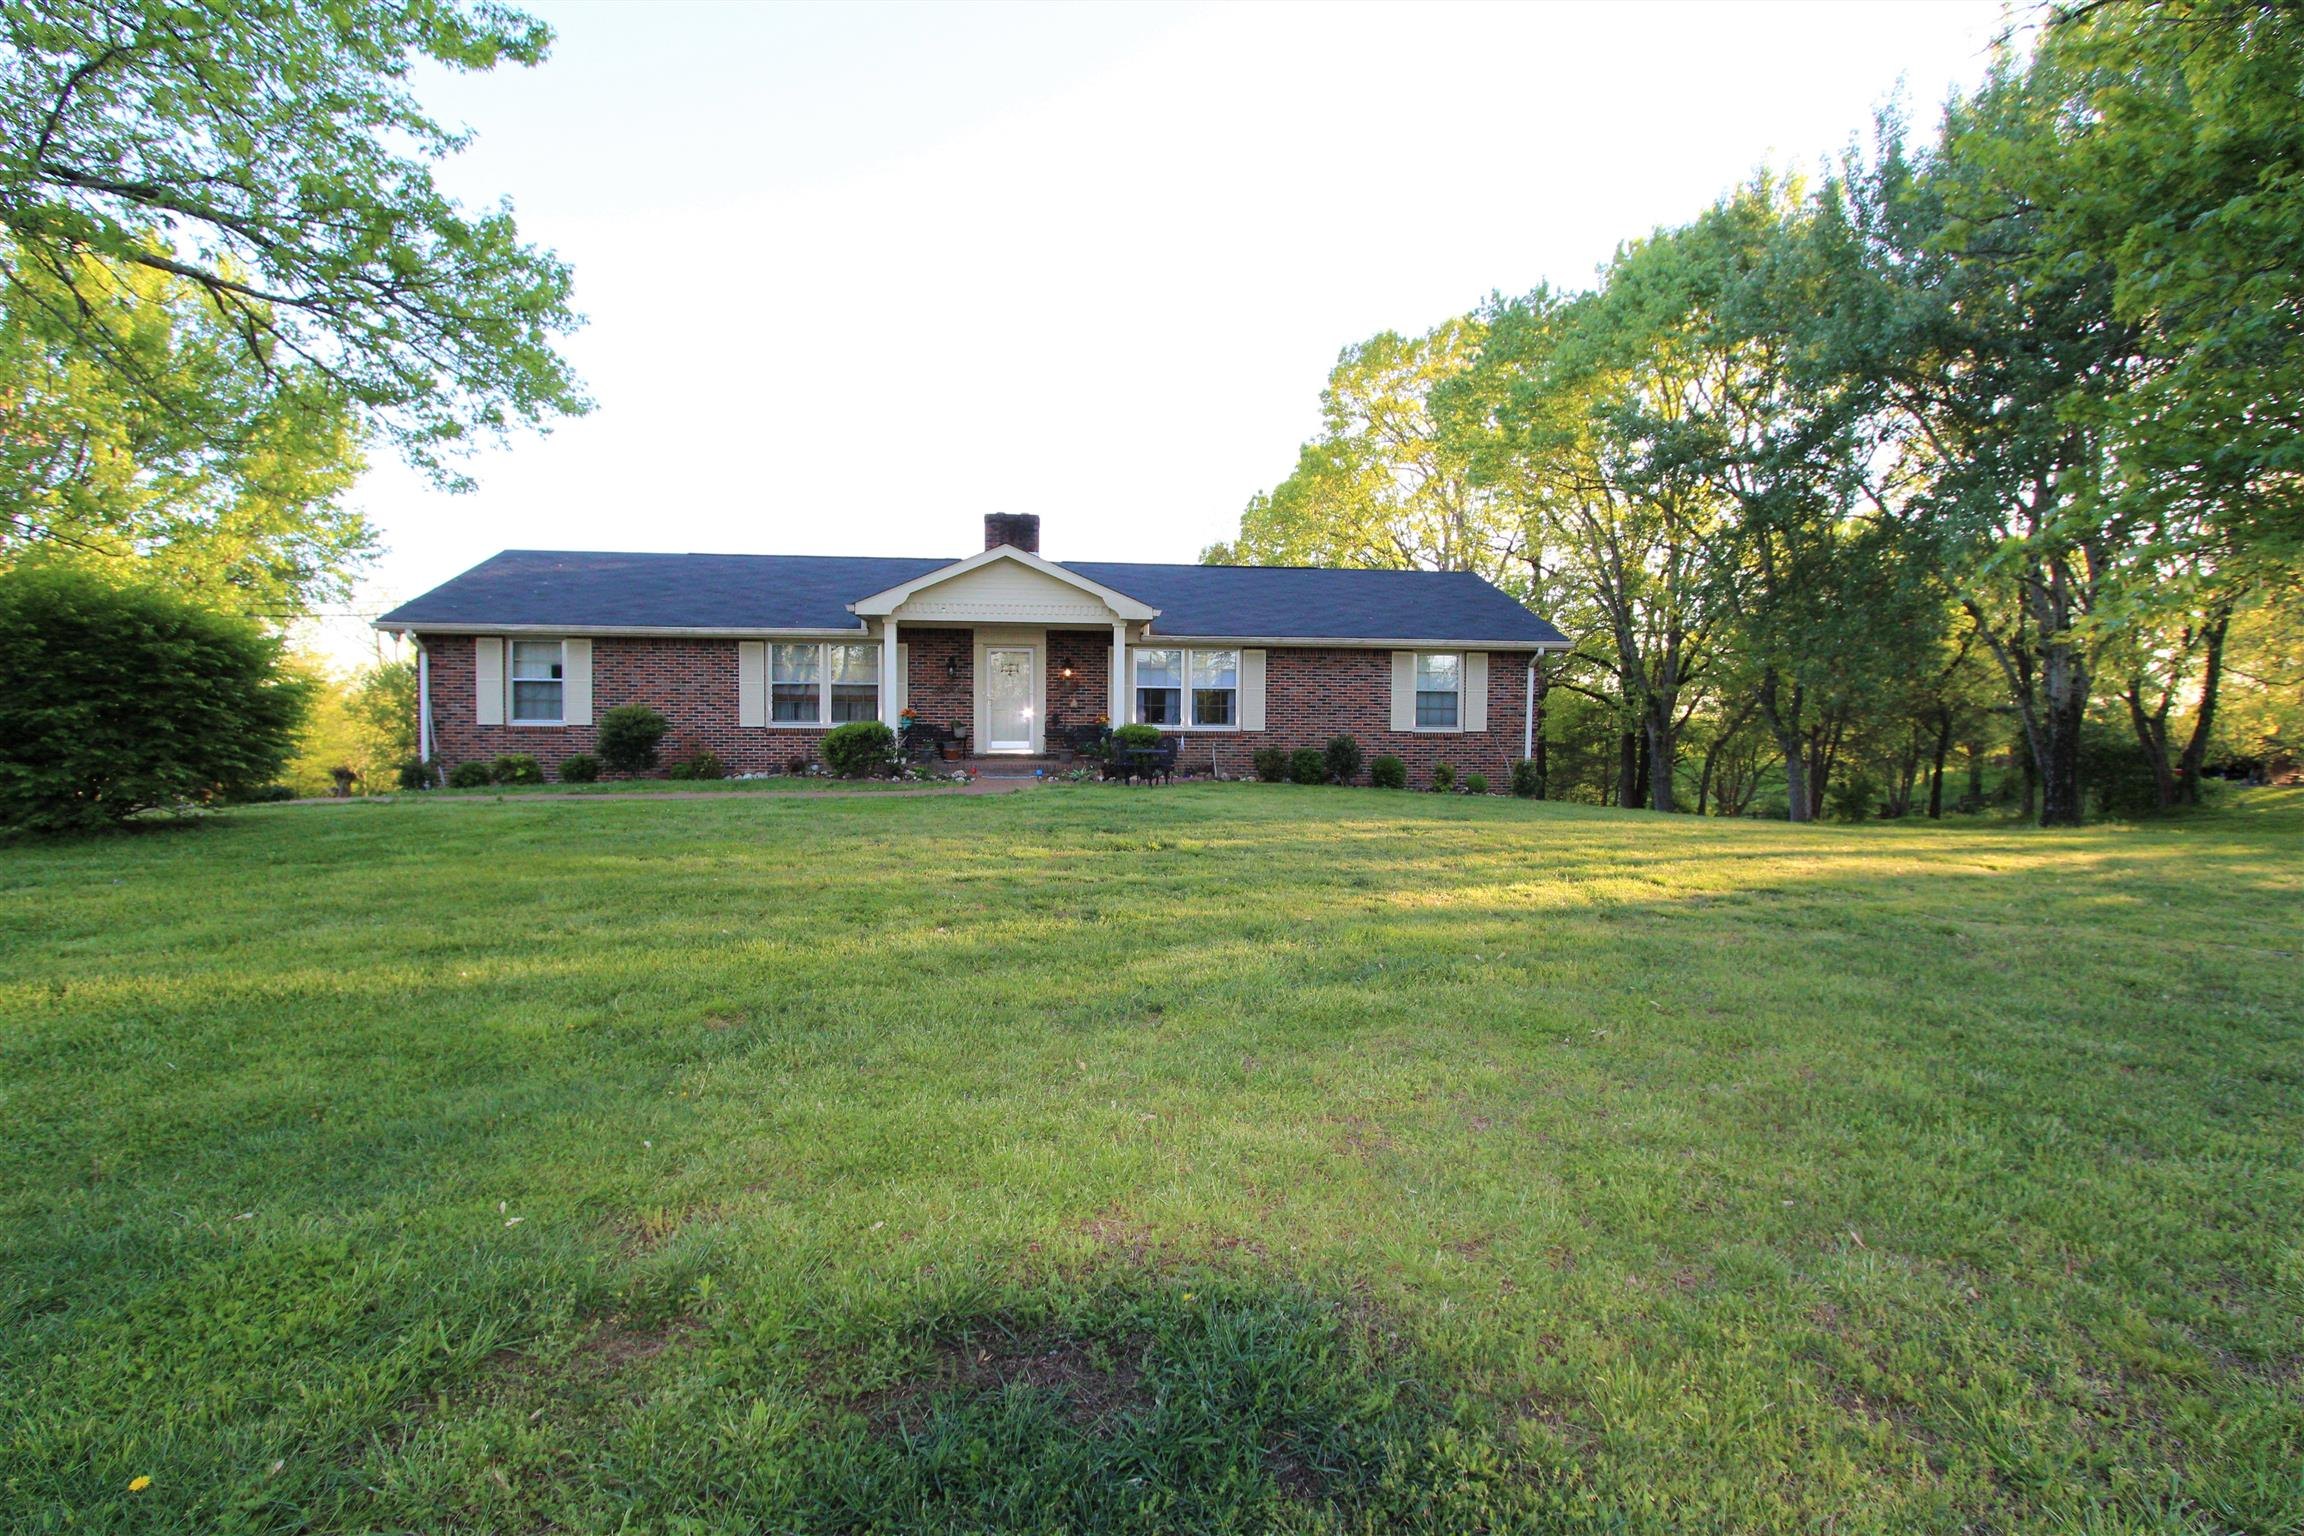 3392 Old Franklin Rd, Nashville-Antioch in Davidson County County, TN 37013 Home for Sale